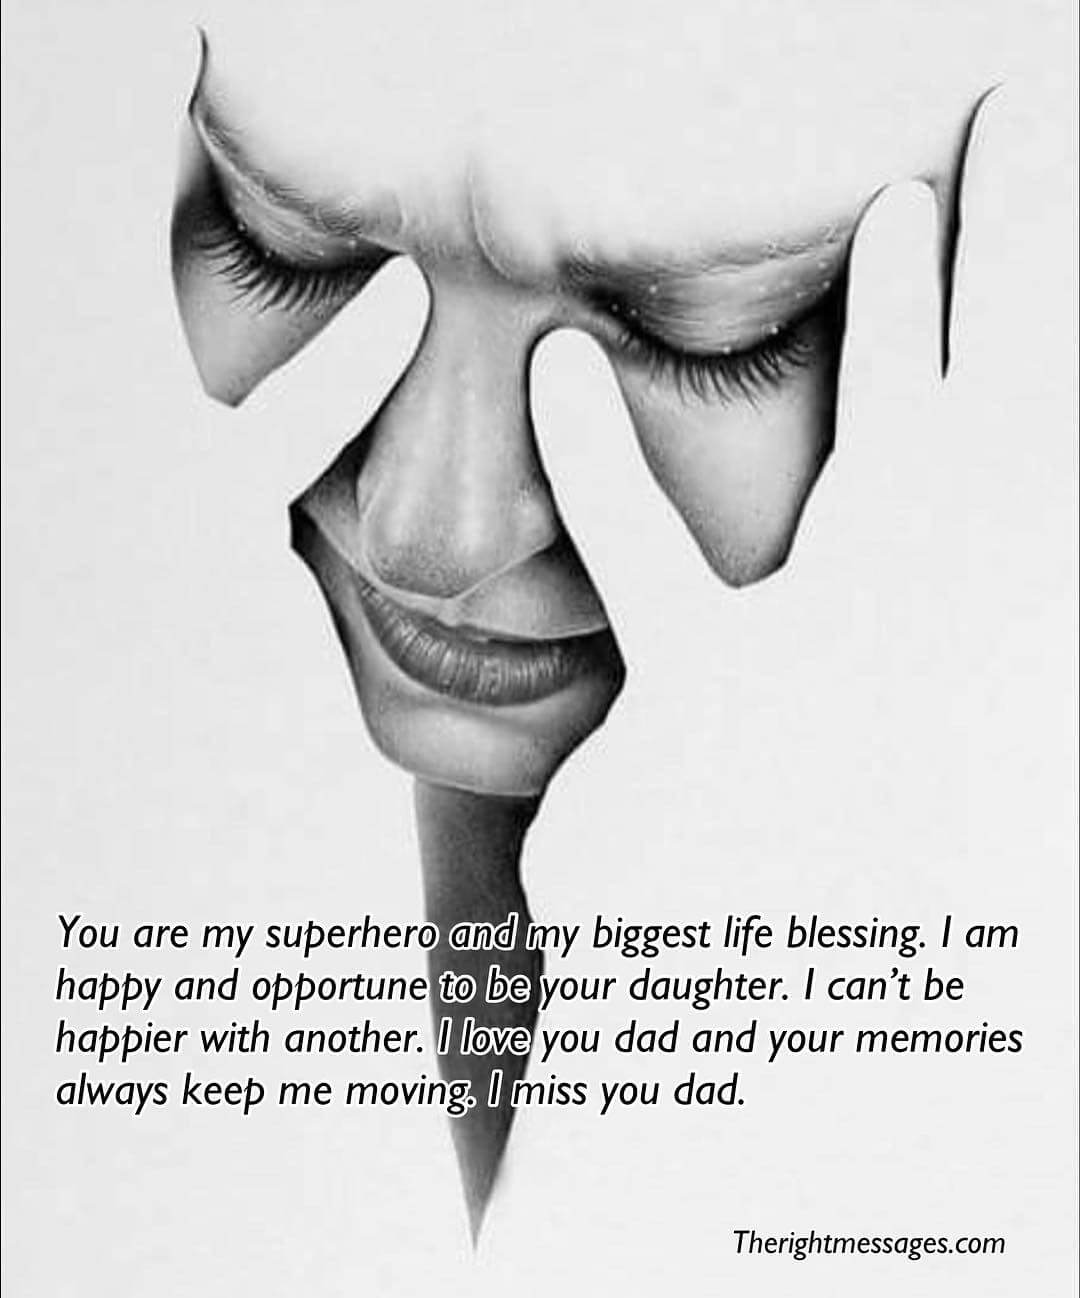 40 I Miss You Messages & Quotes For Dad after Death | The ...